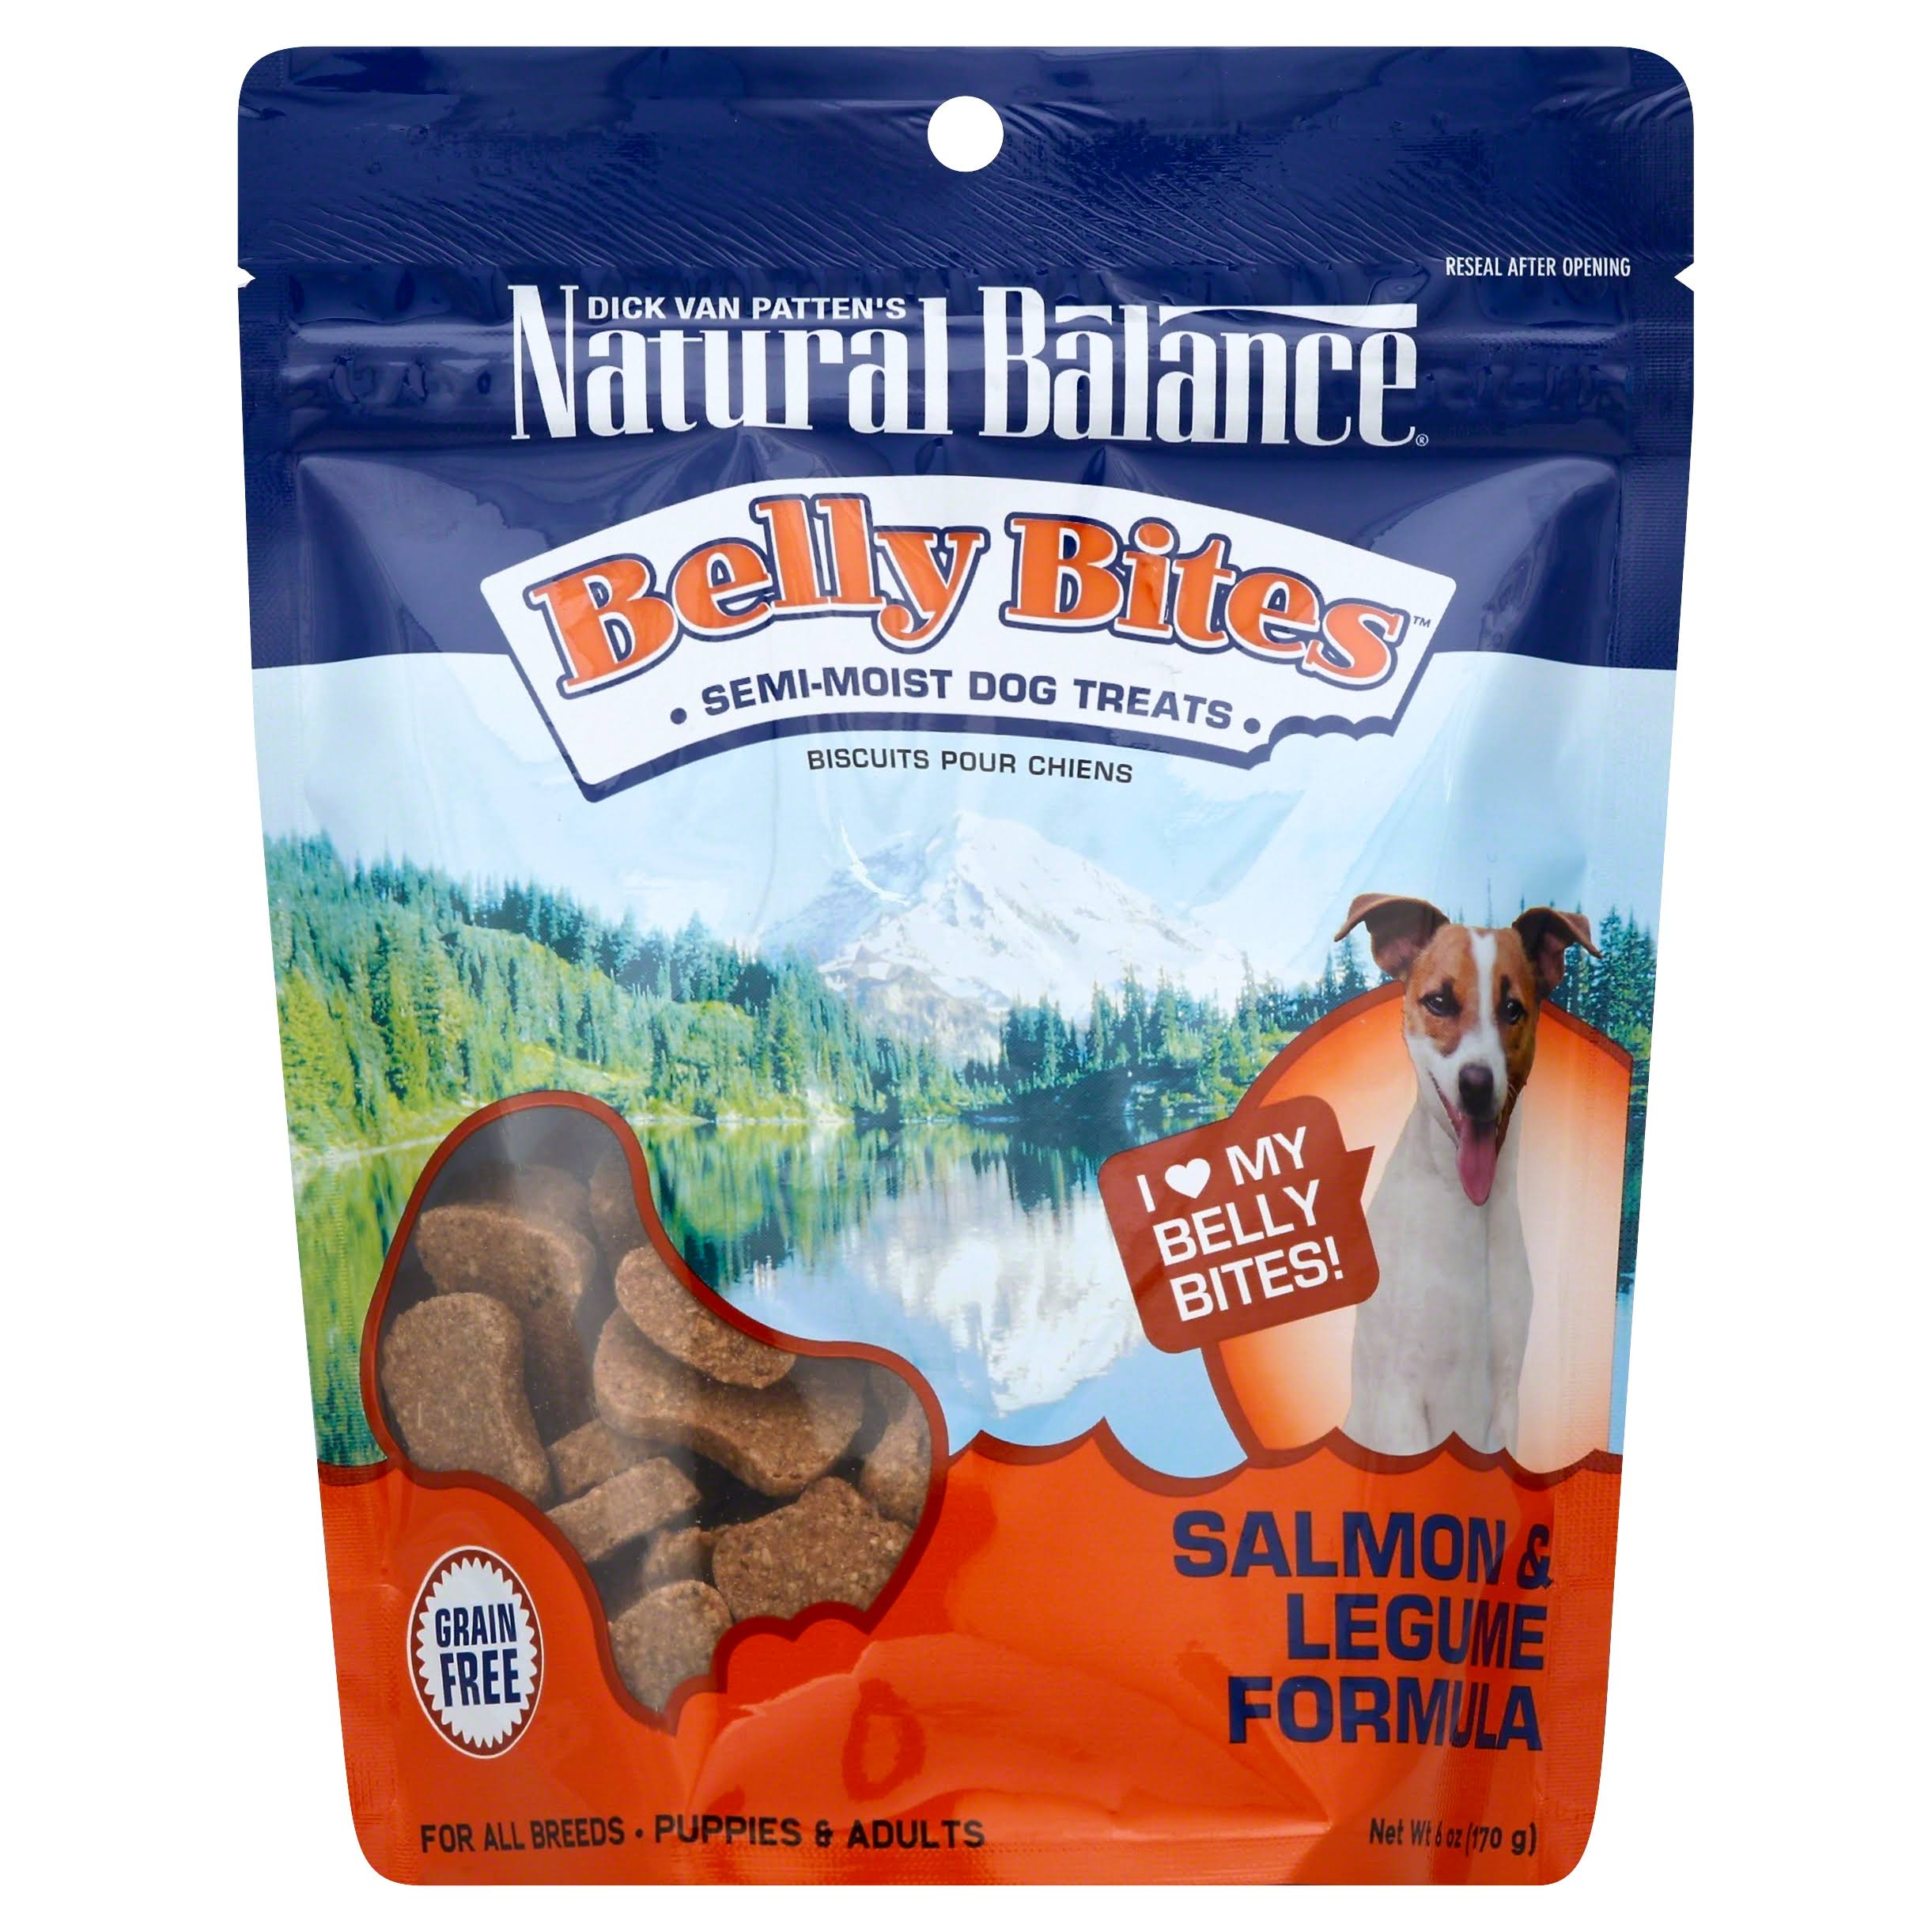 Natural Balance Belly Bites Semi-Moist Dog Treats - Salmon and Legume Formula, 6oz